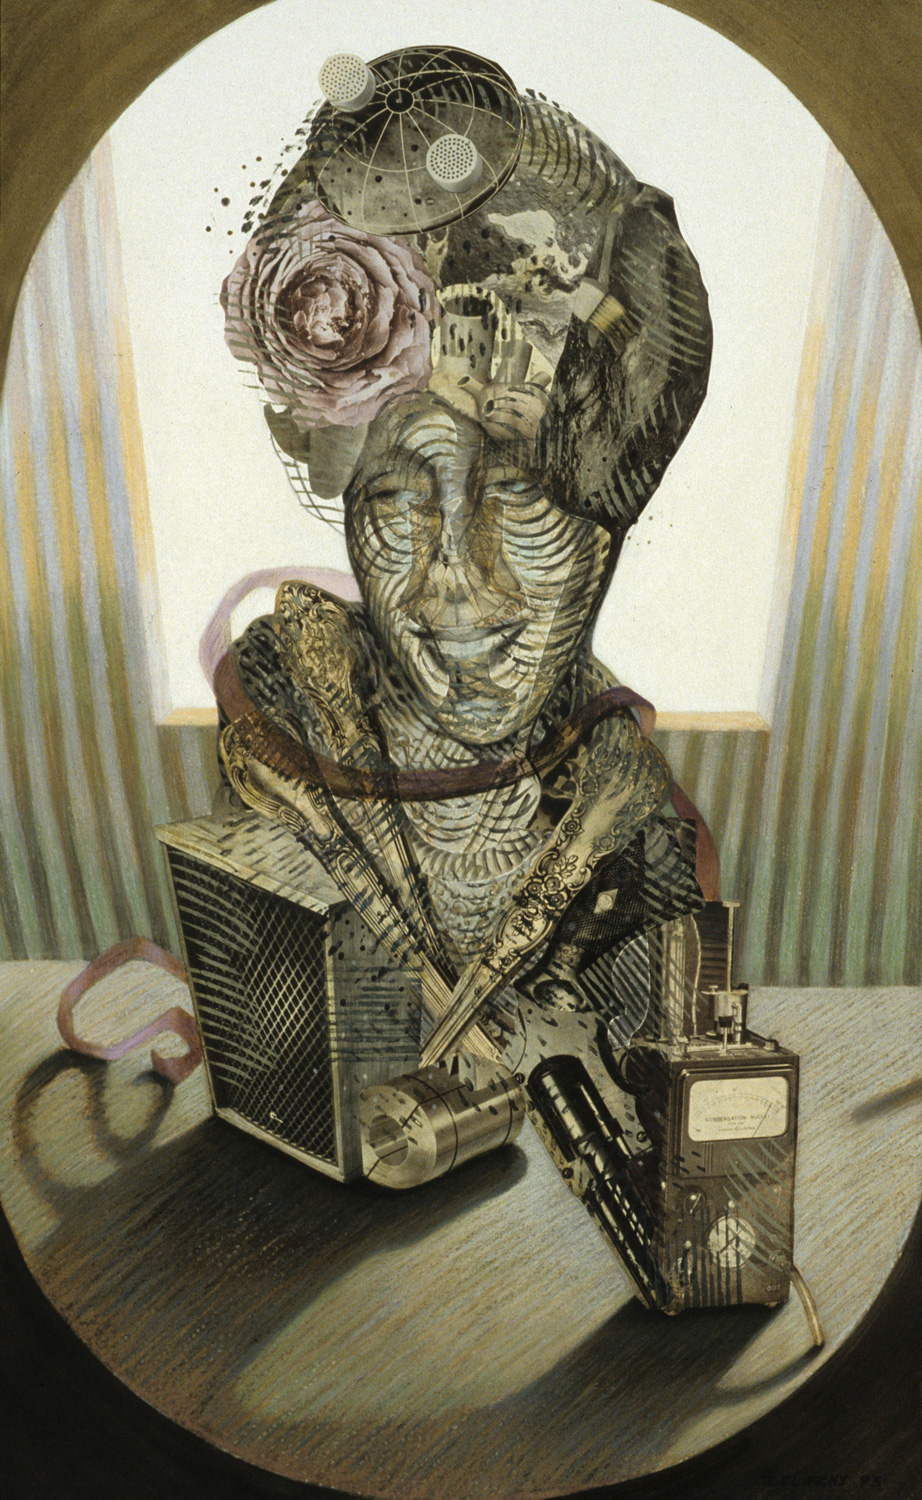 "Nebulata, 1993, mixed media, collage on paper, 32"" x 20"""